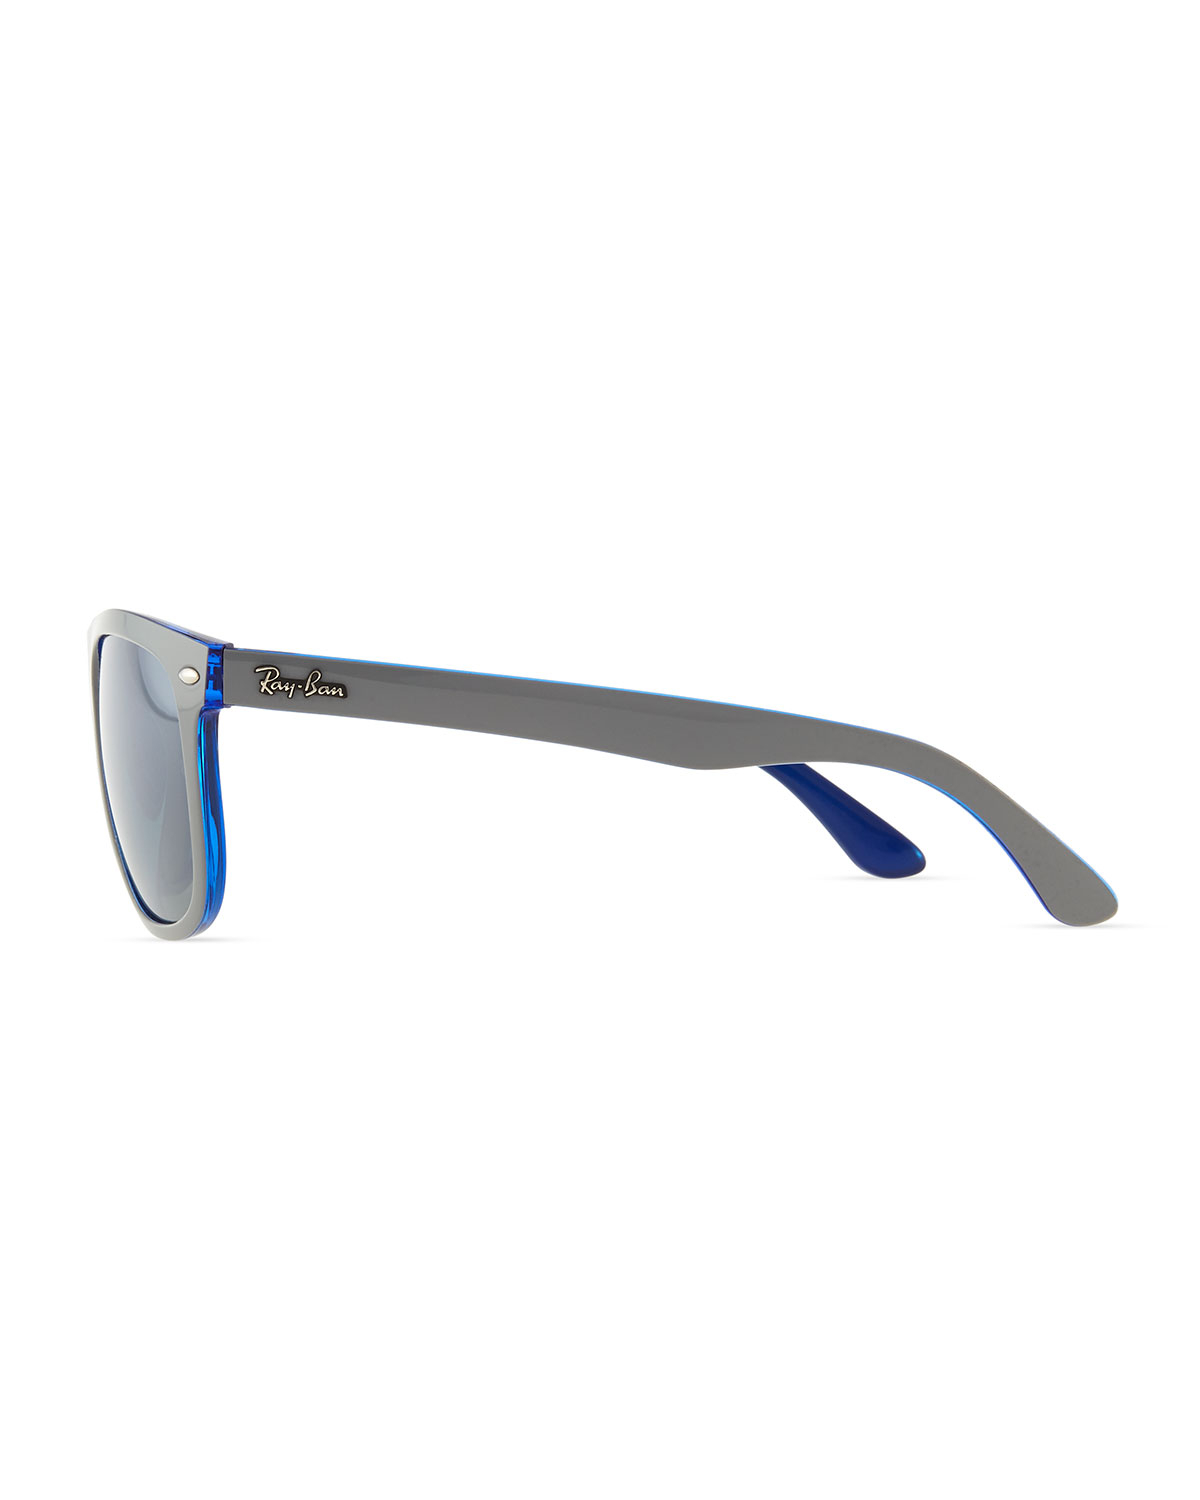 3c93fff90a Lyst - Ray-Ban Highstreet Mirror Shield Sunglasses Bluegray in Gray